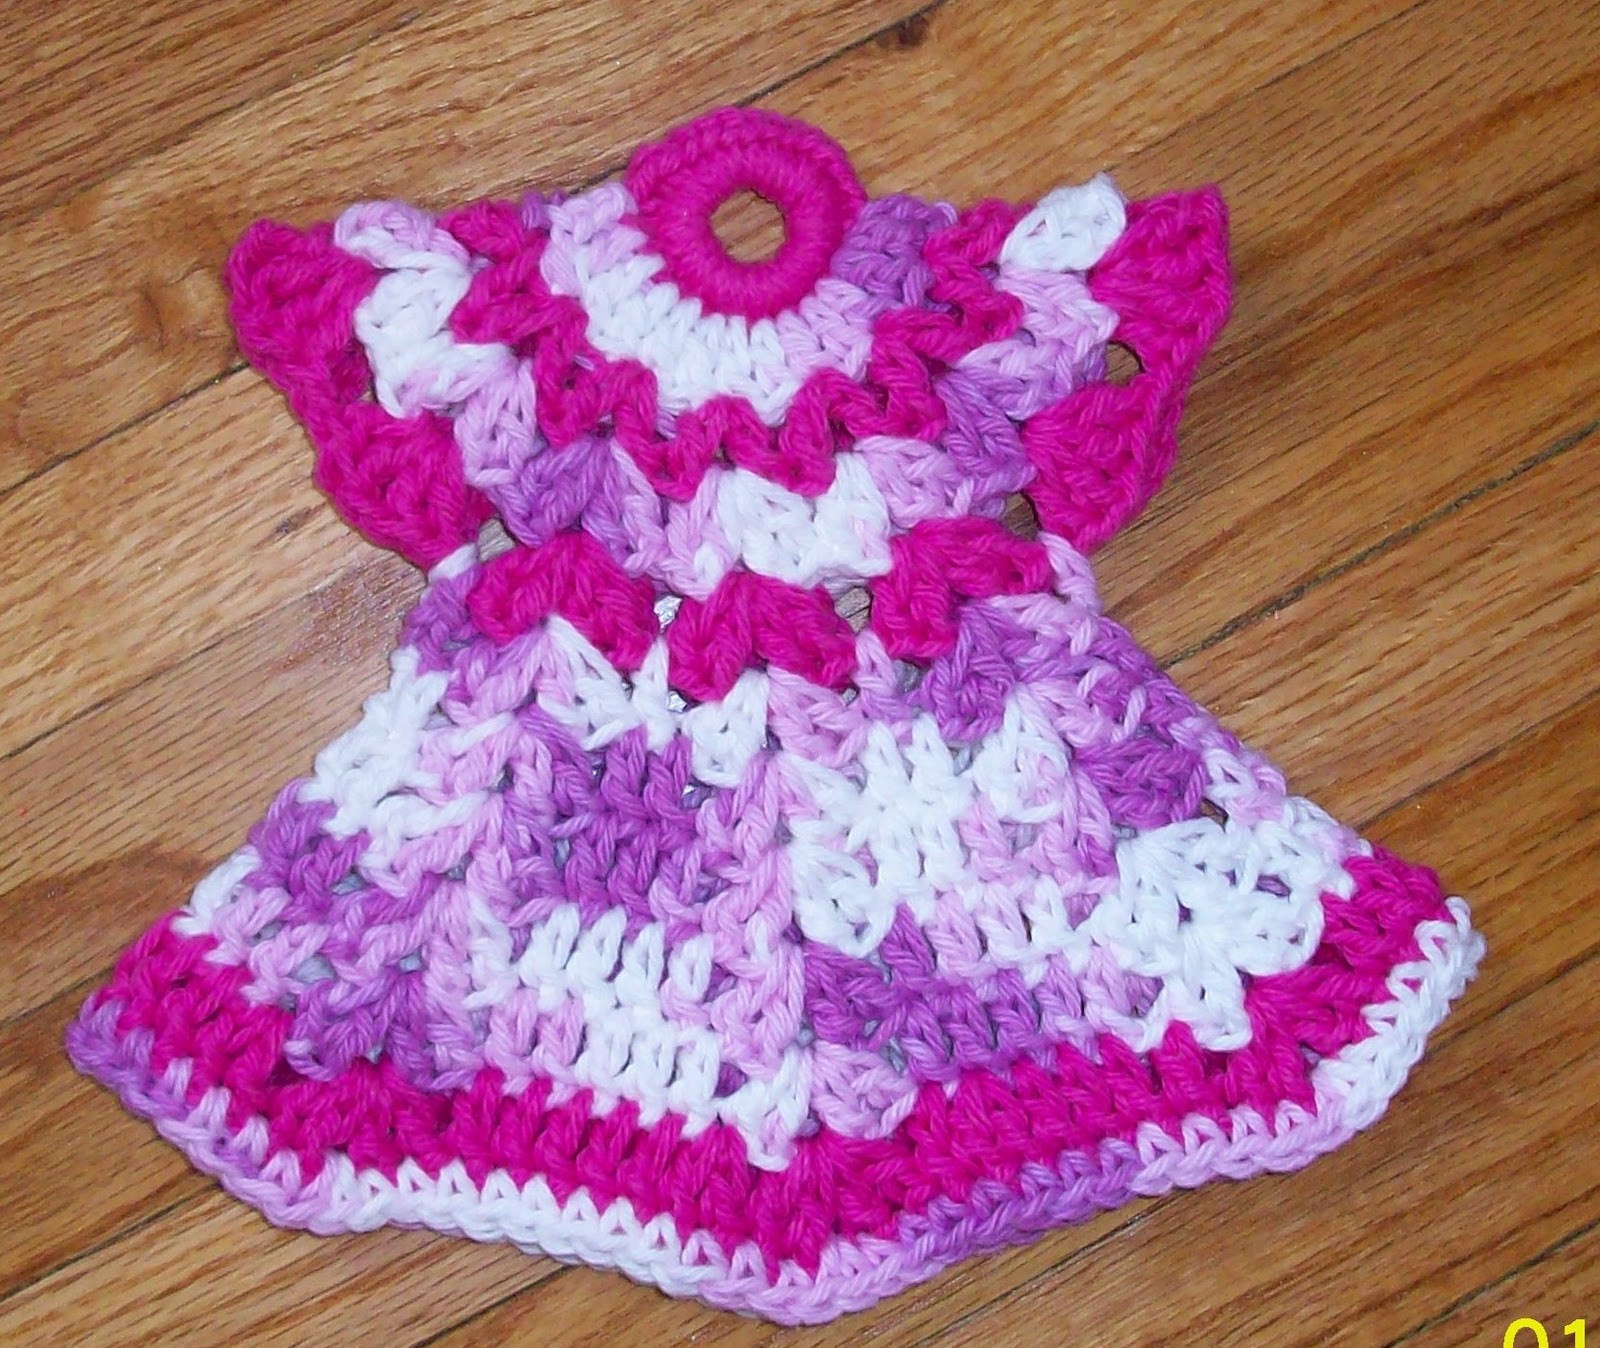 Awesome Free Patterns for Easy to Crochet Pot Holders – Easy Free Crochet Potholder Patterns Of Superb 46 Pictures Free Crochet Potholder Patterns